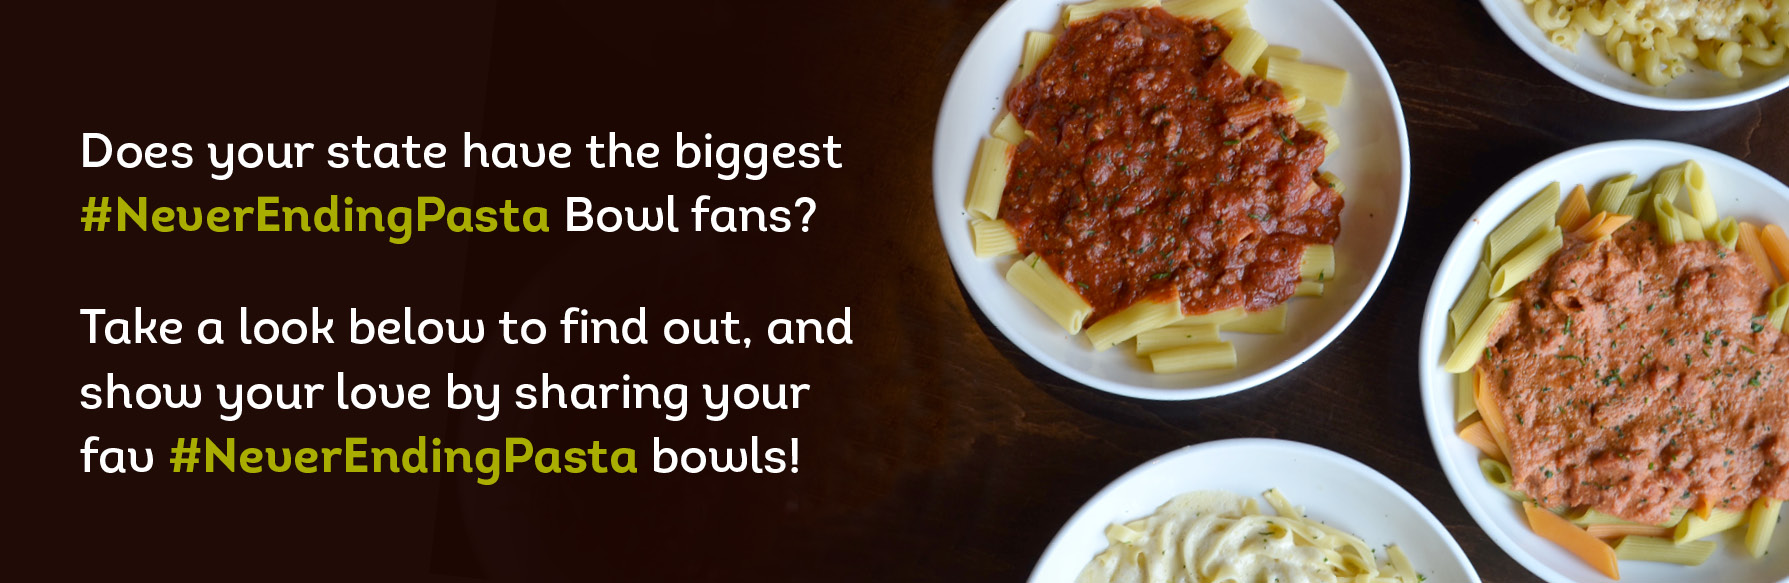 See states with the biggest #NeverEndingPasta Bowl fans